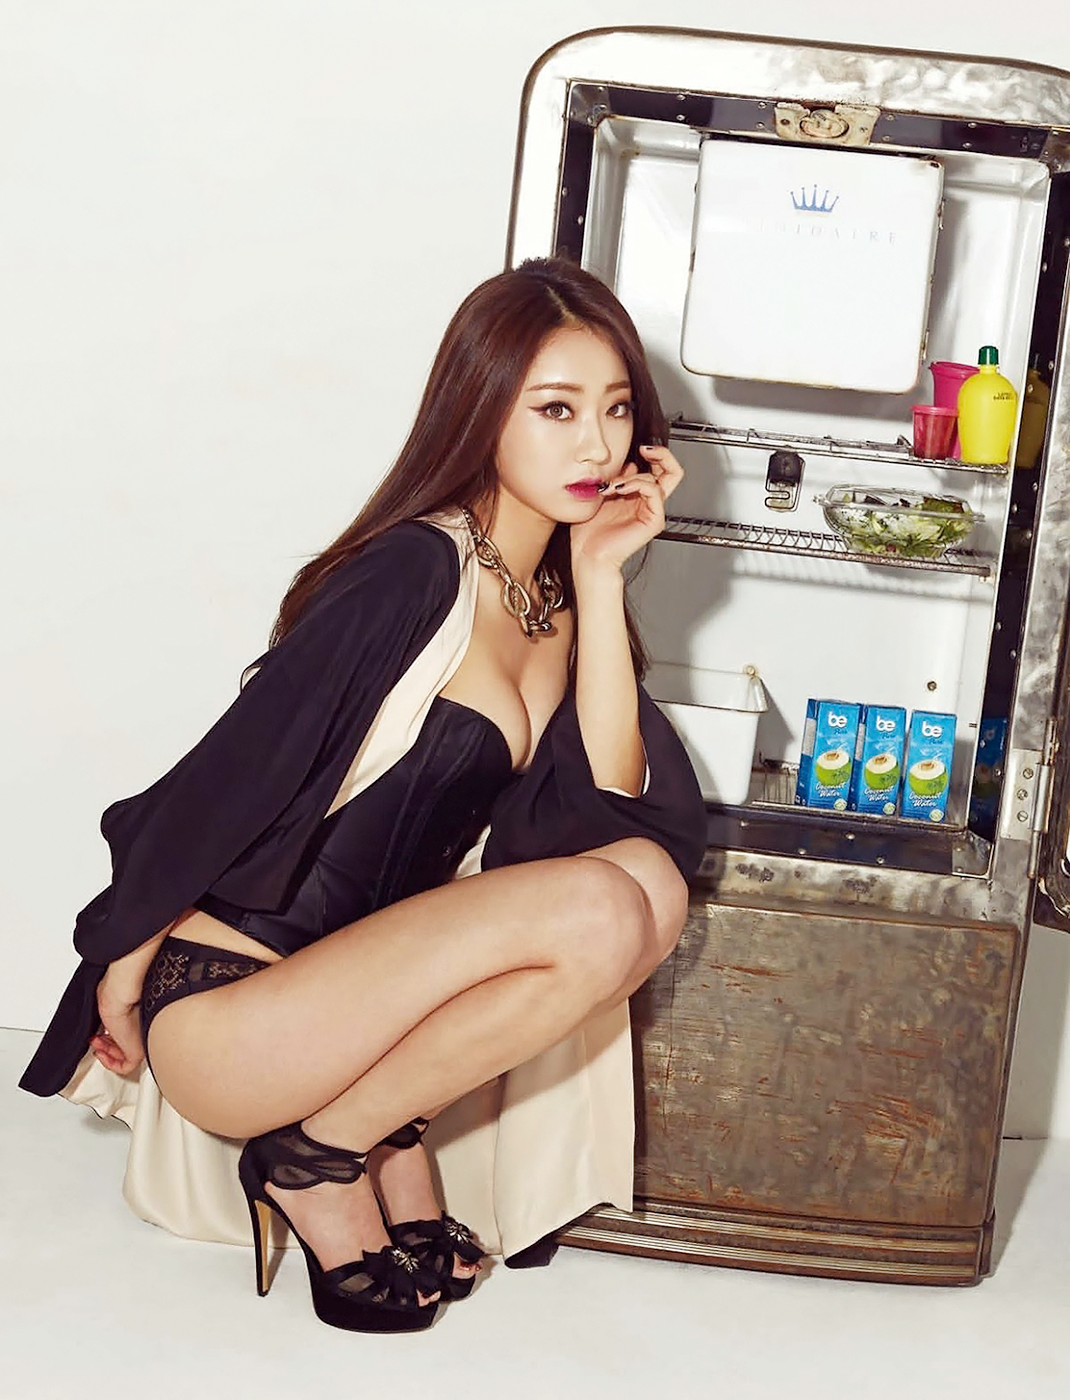 9MUSES, Kyungri, Korean, Celebrities, Underwear, Underwear Photoshoots,